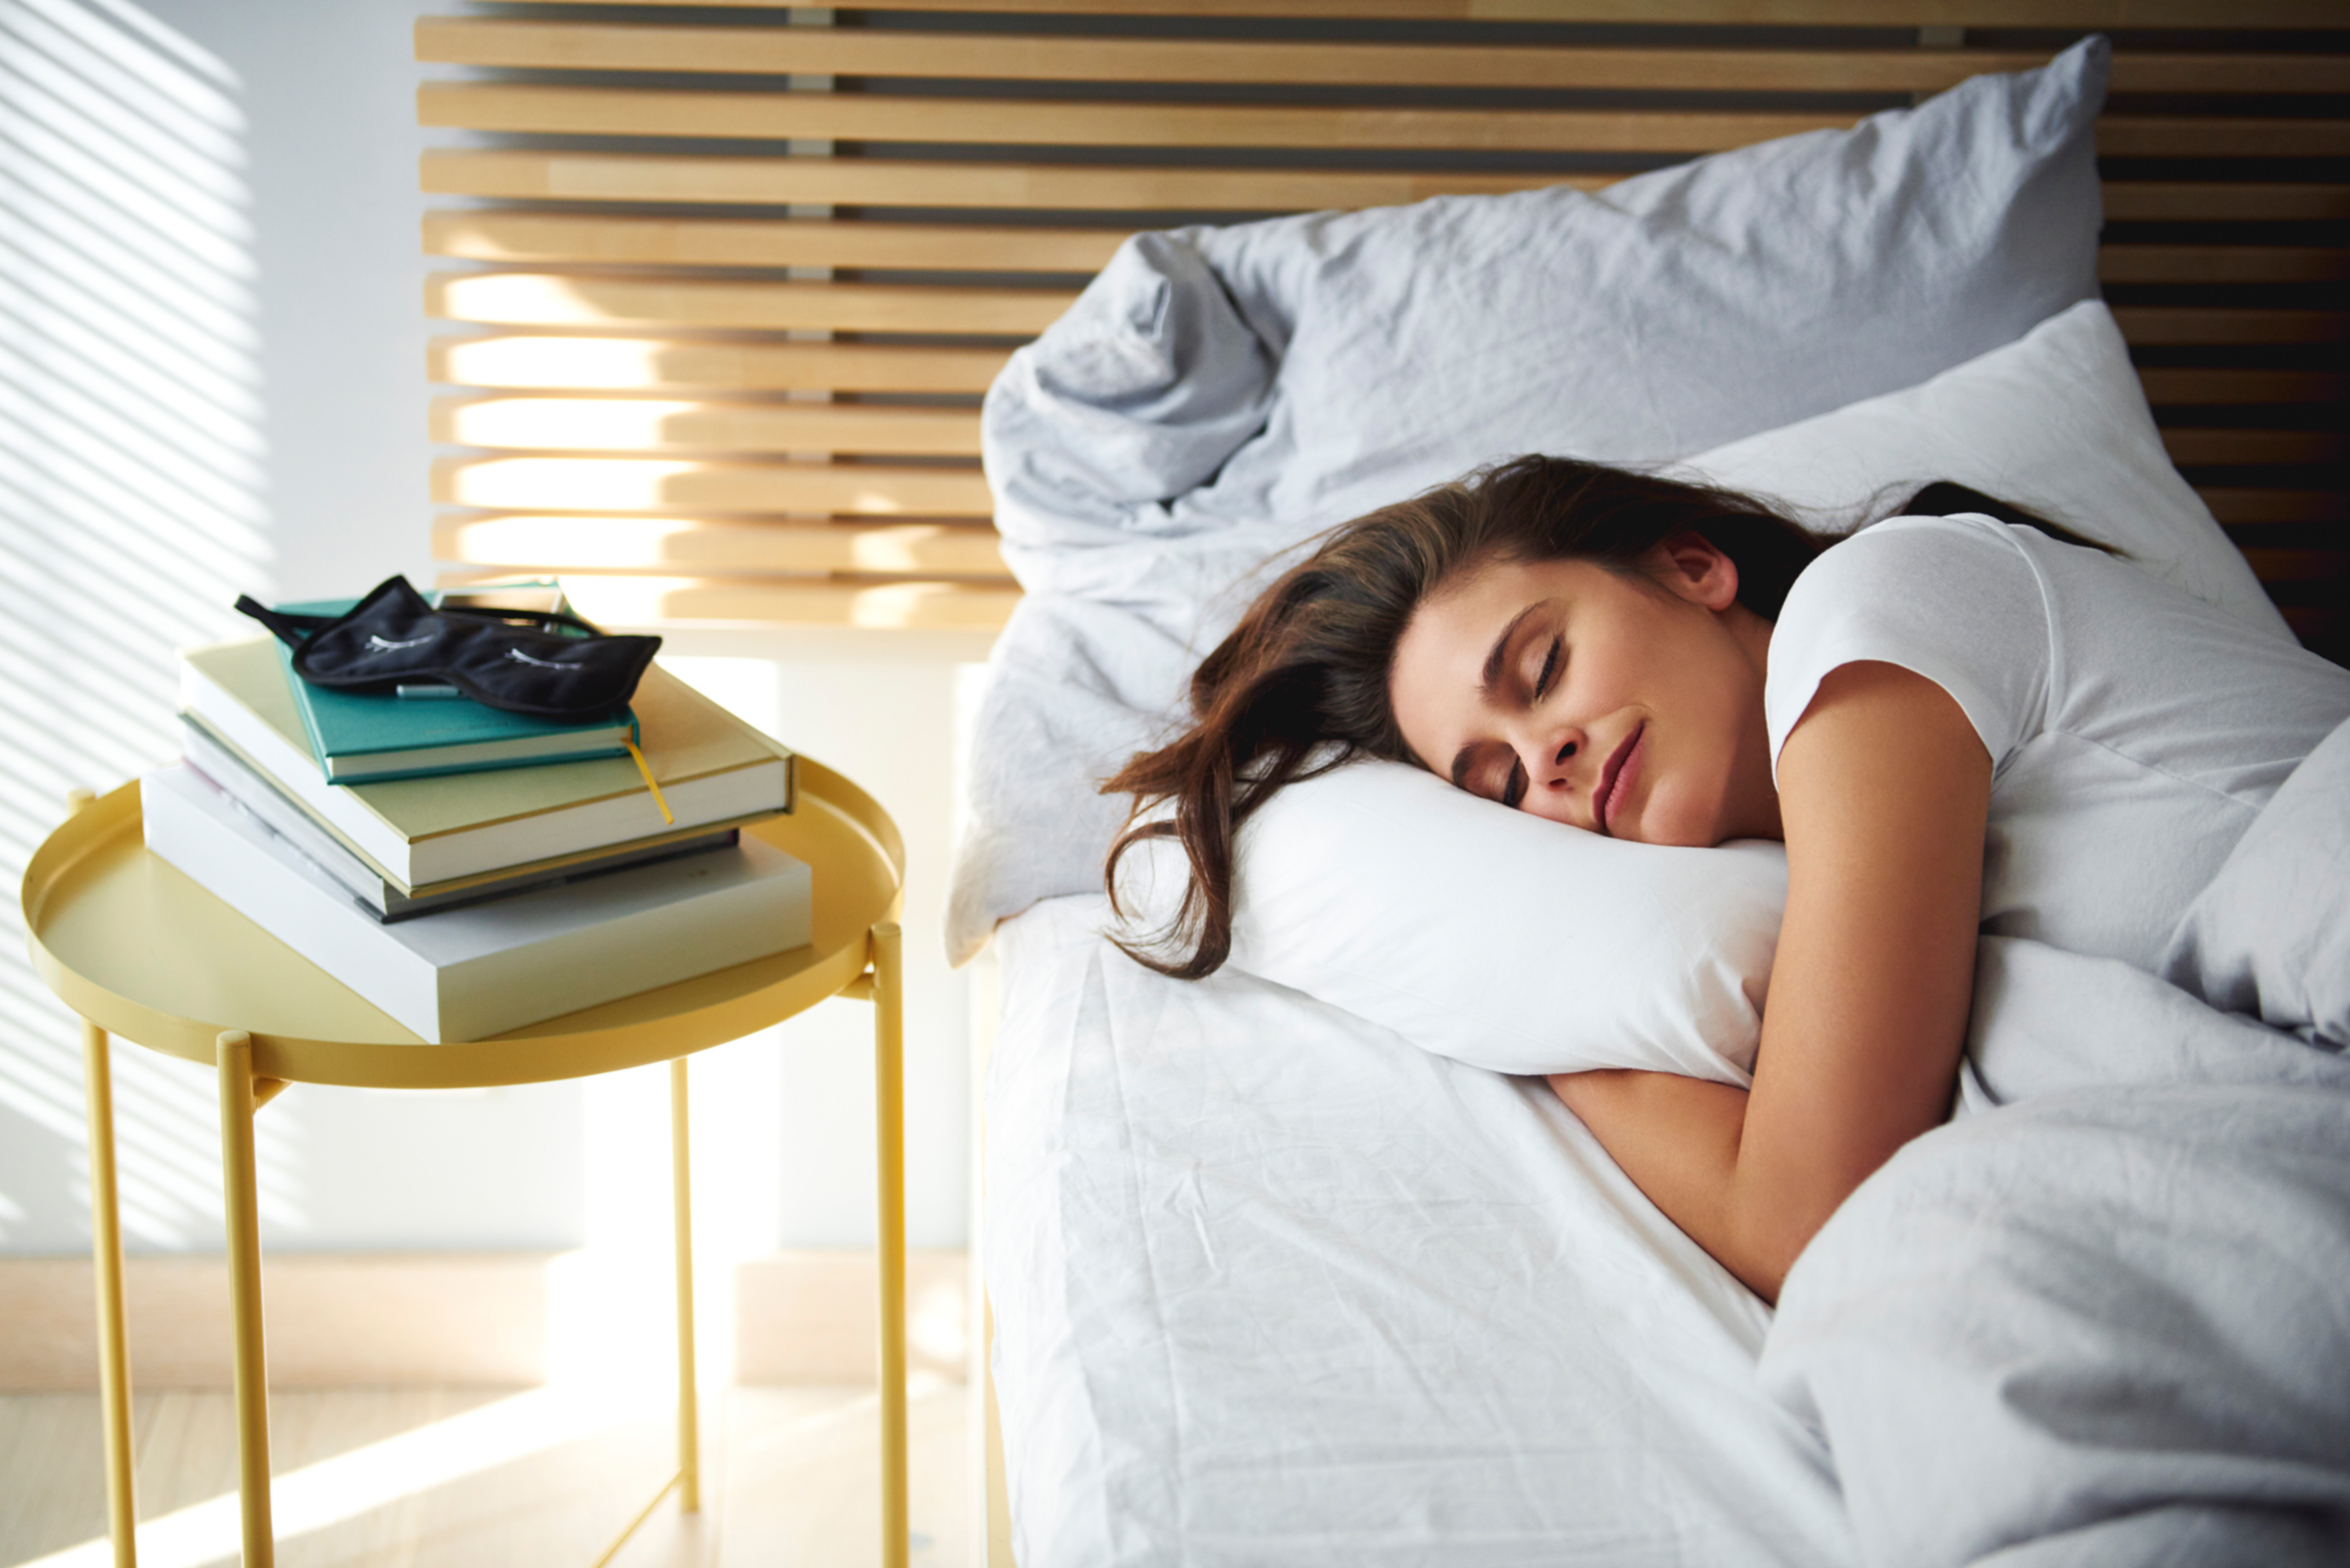 Does Your Sleep Position Impact Your Ability to Get a Good Night's Rest?